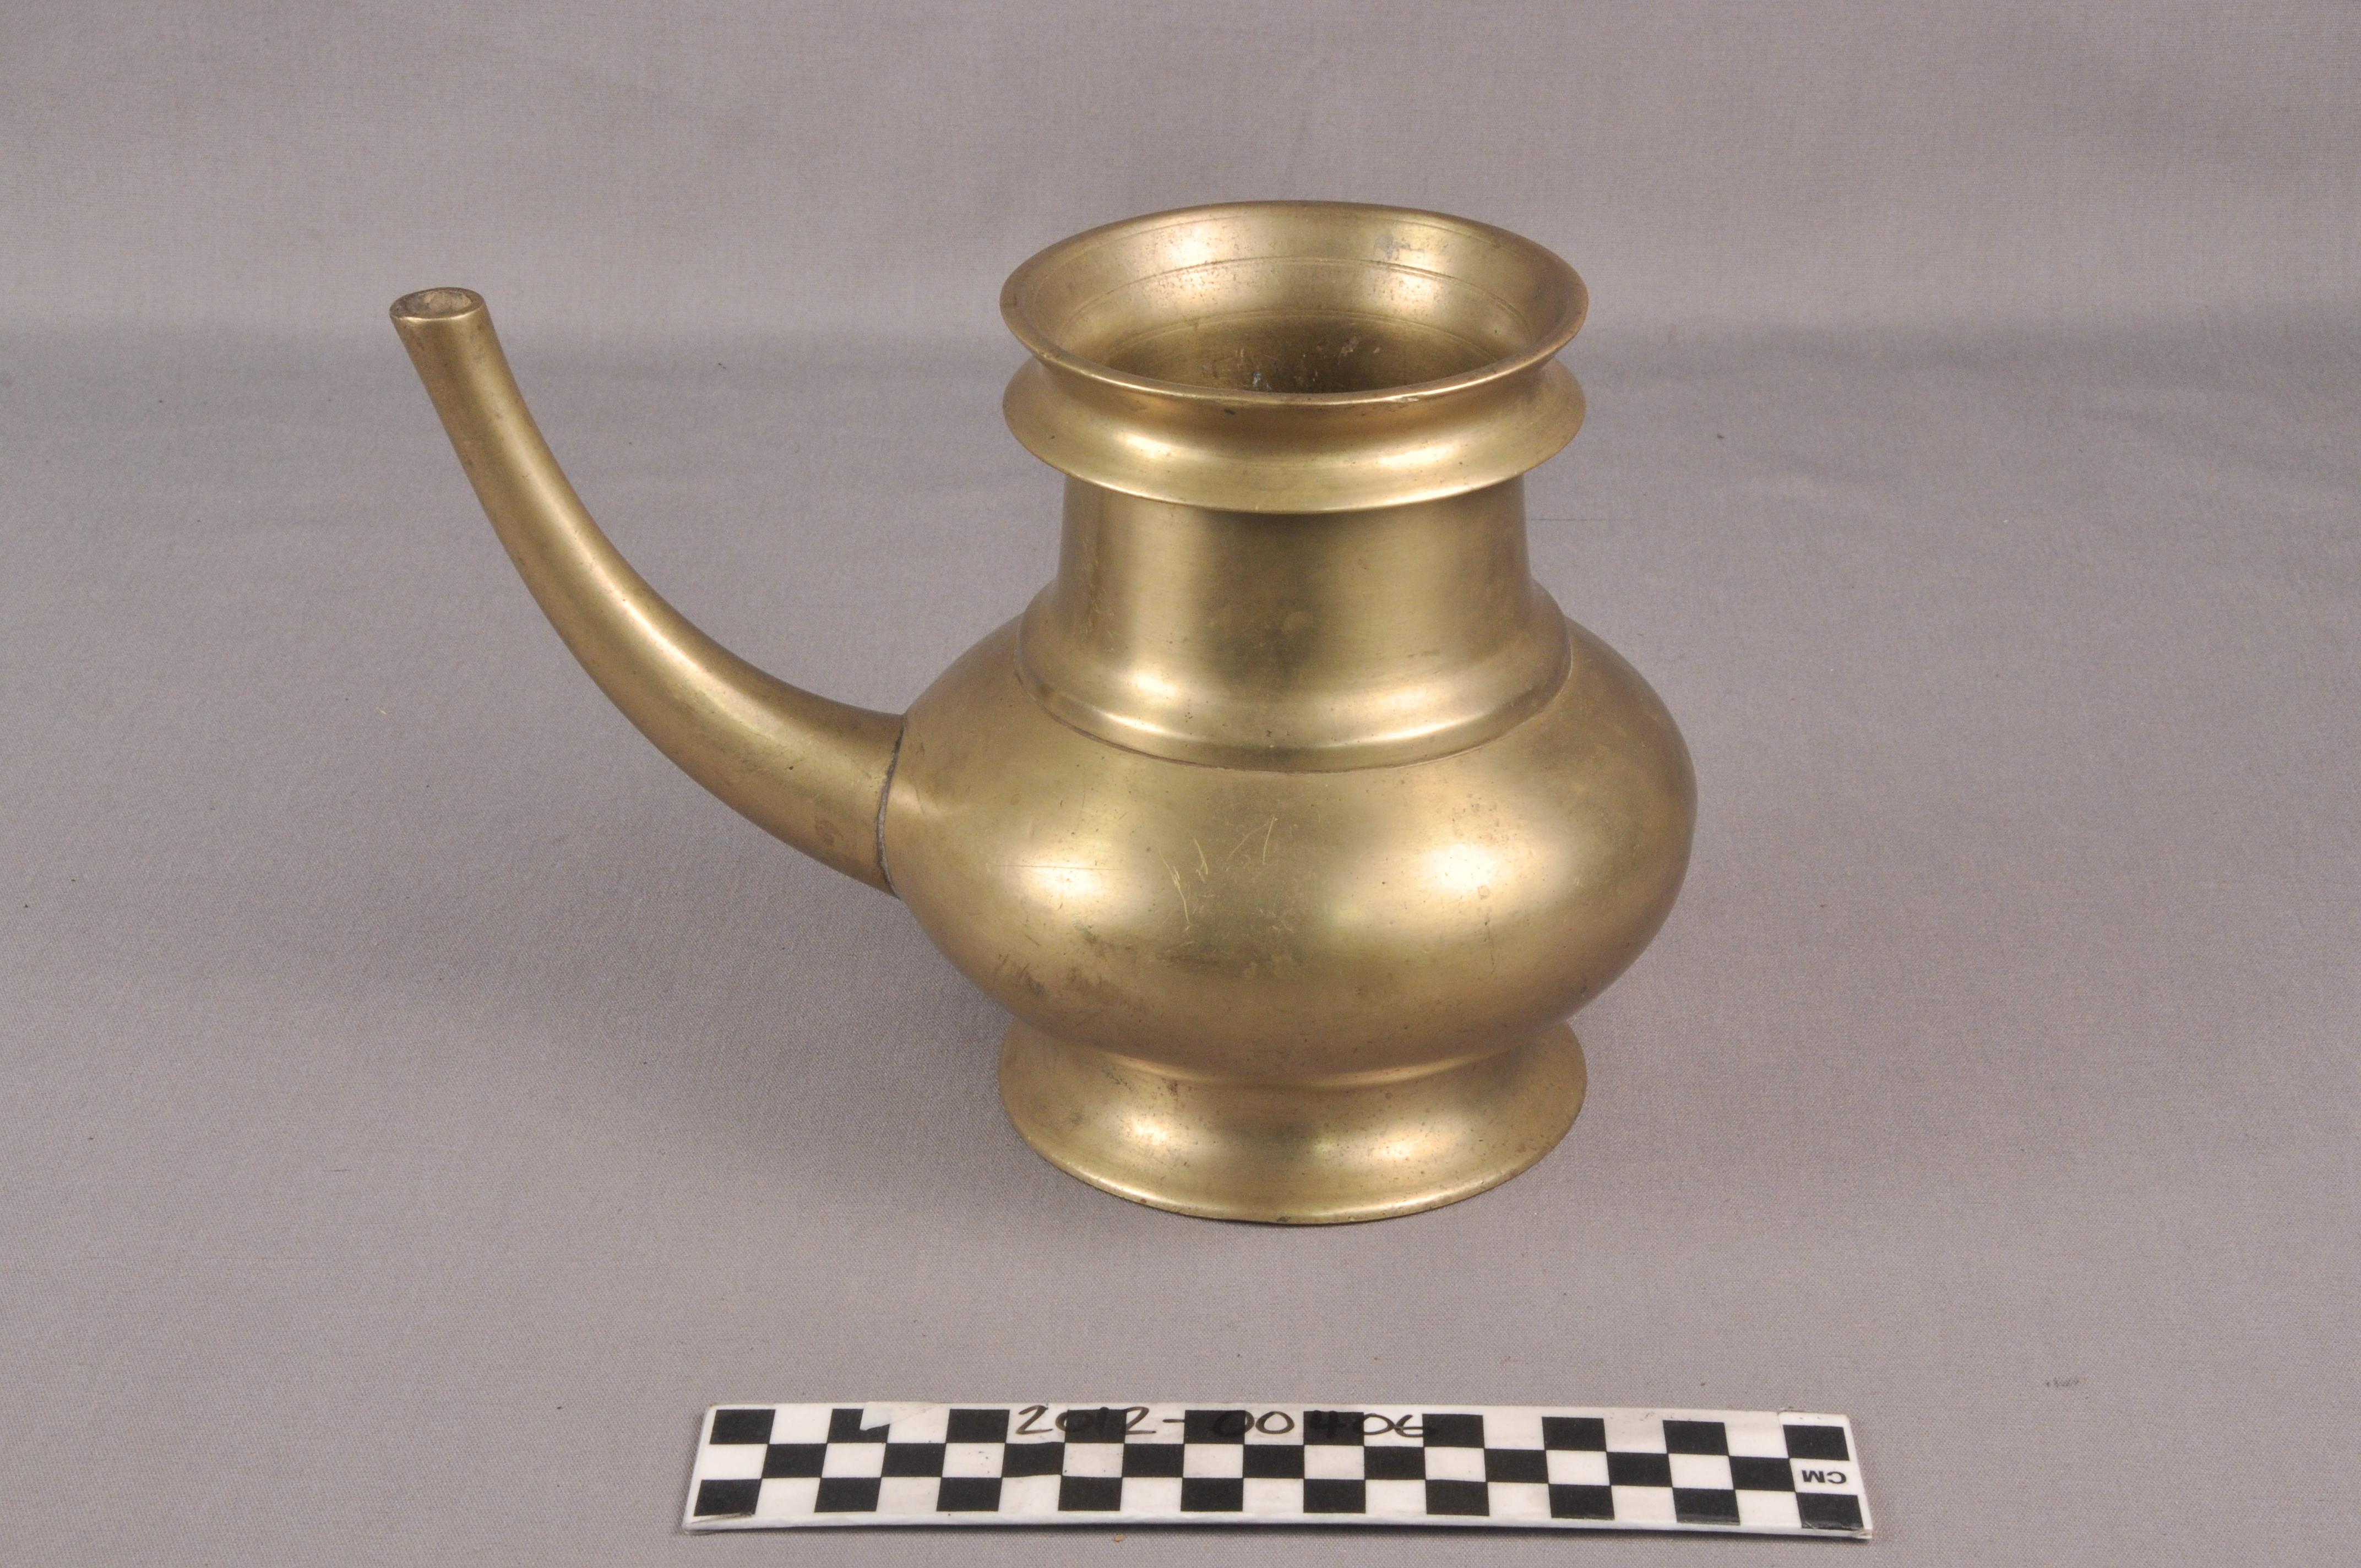 Lota with Spout, Search the Collection, Spurlock Museum, U of I